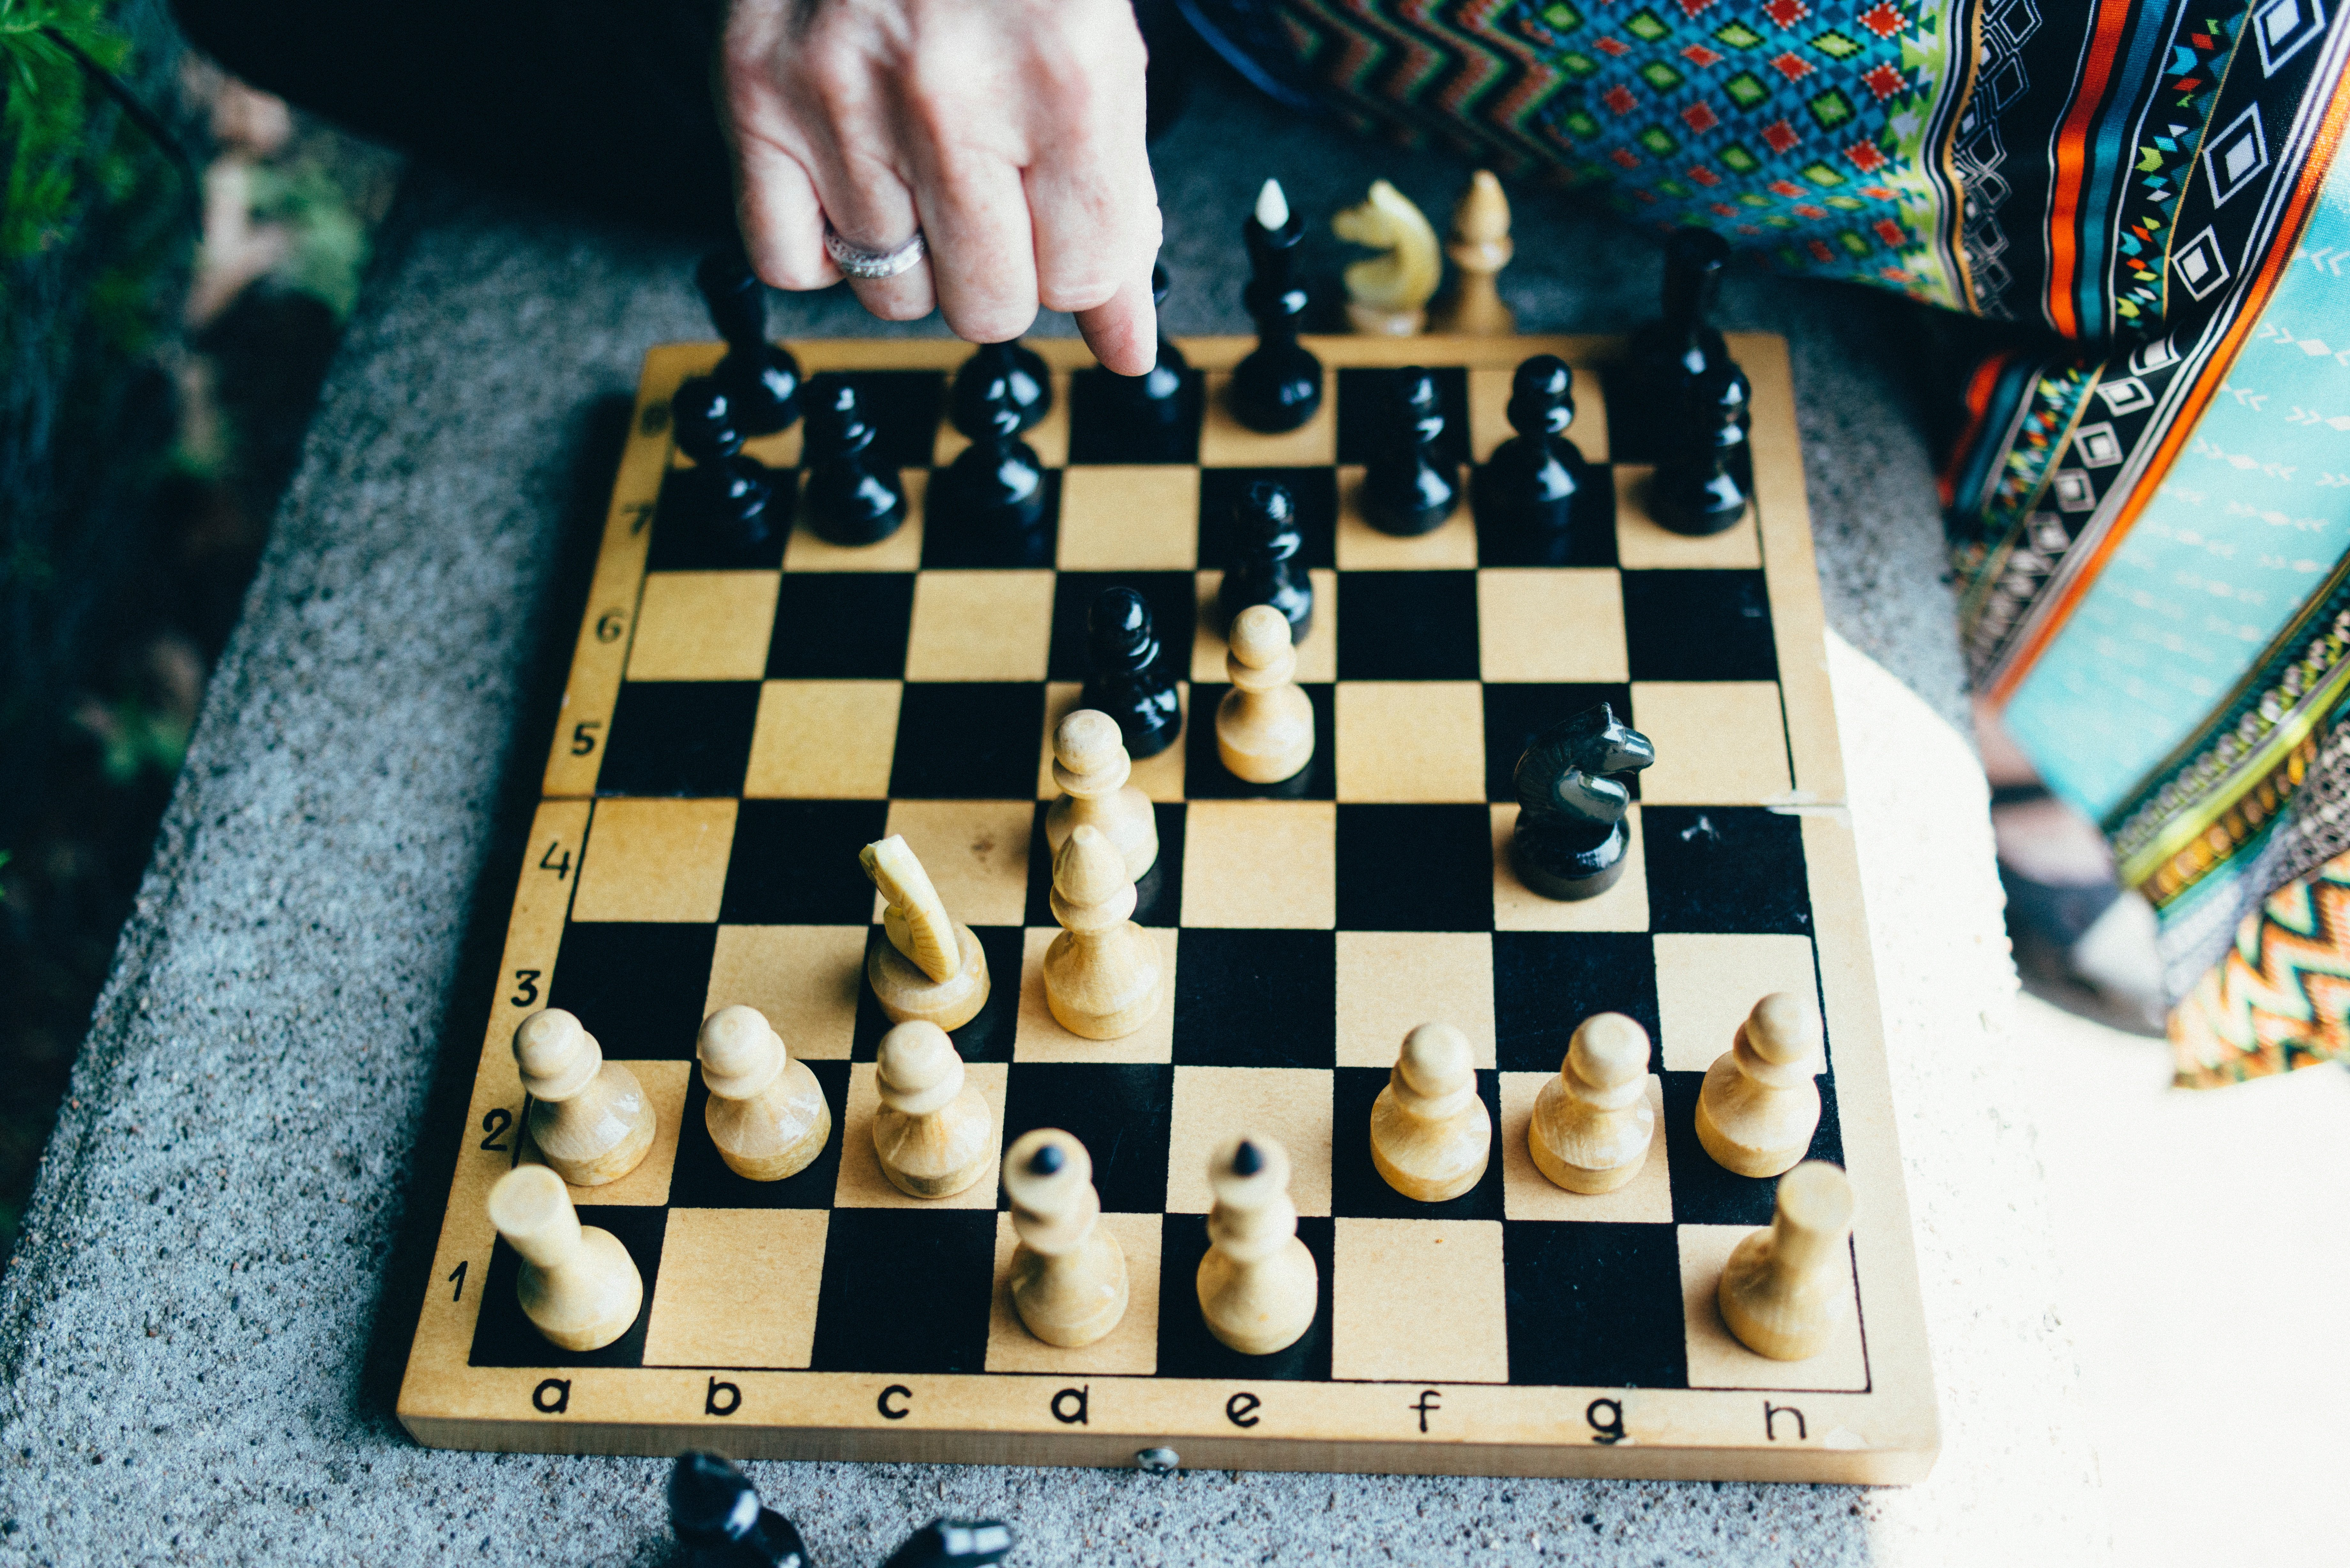 play chess in your luxury cottage, complete with fully equipped games room!